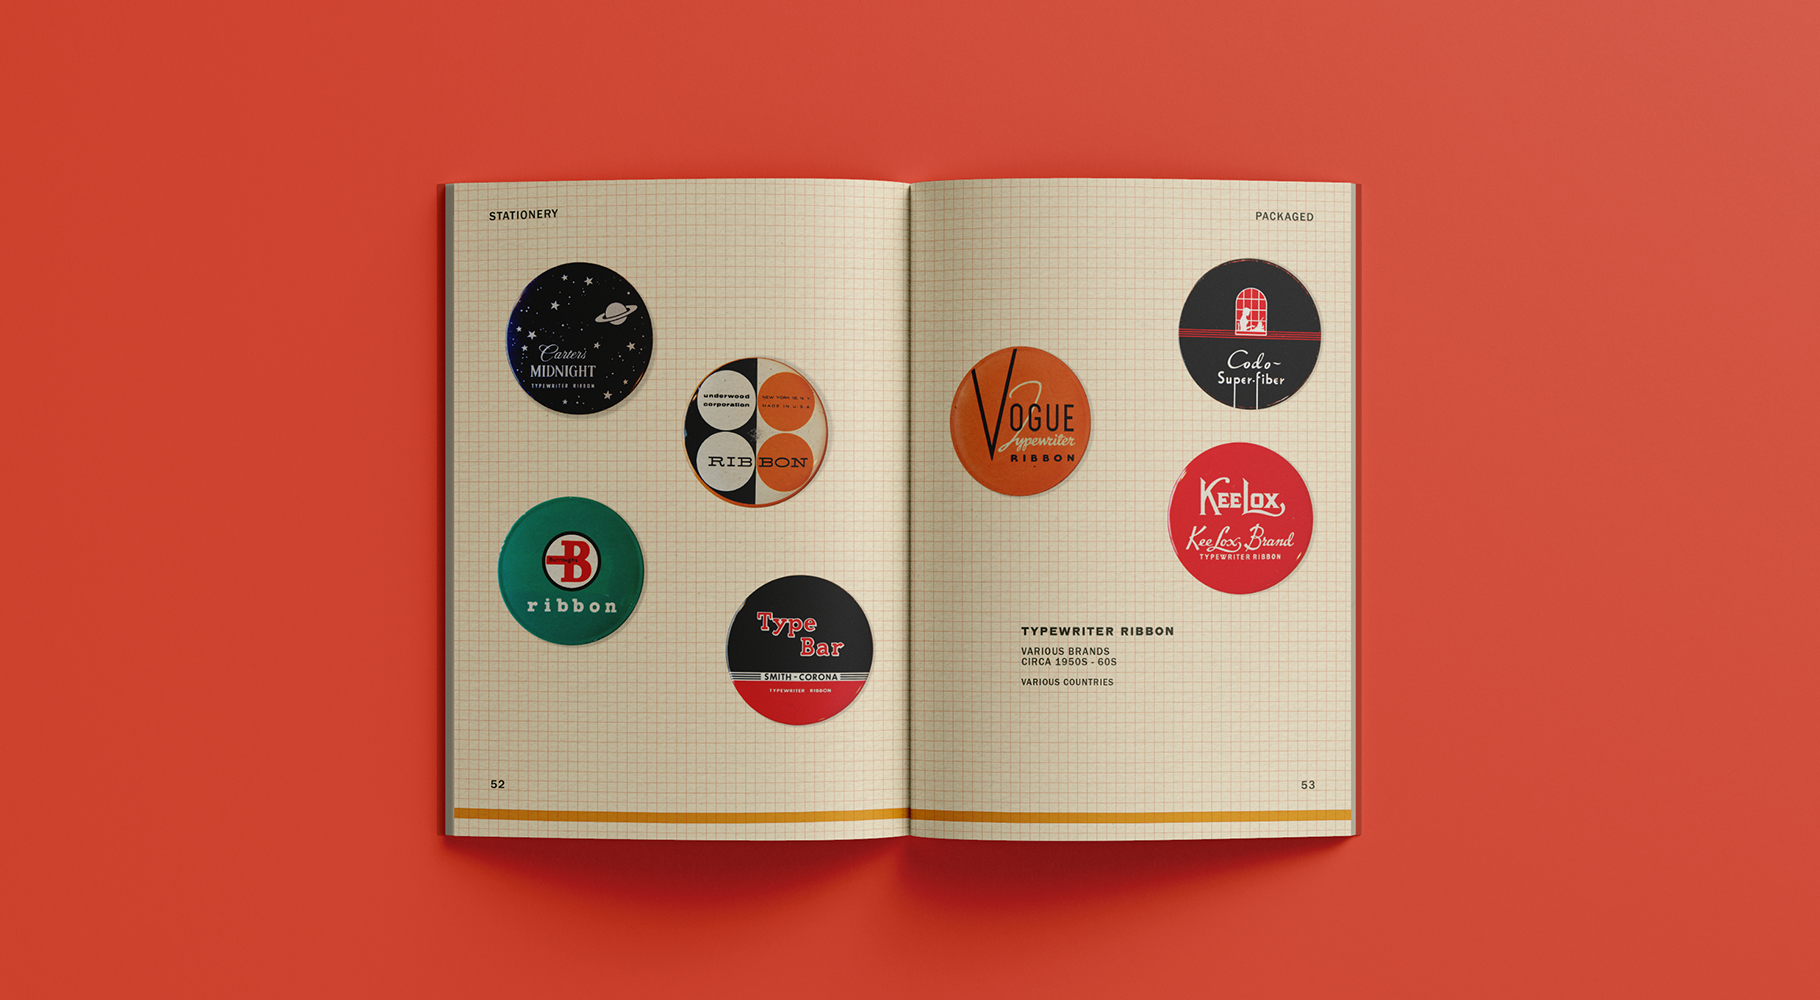 A catalogue spread featuring various typewriter ribbon designs.